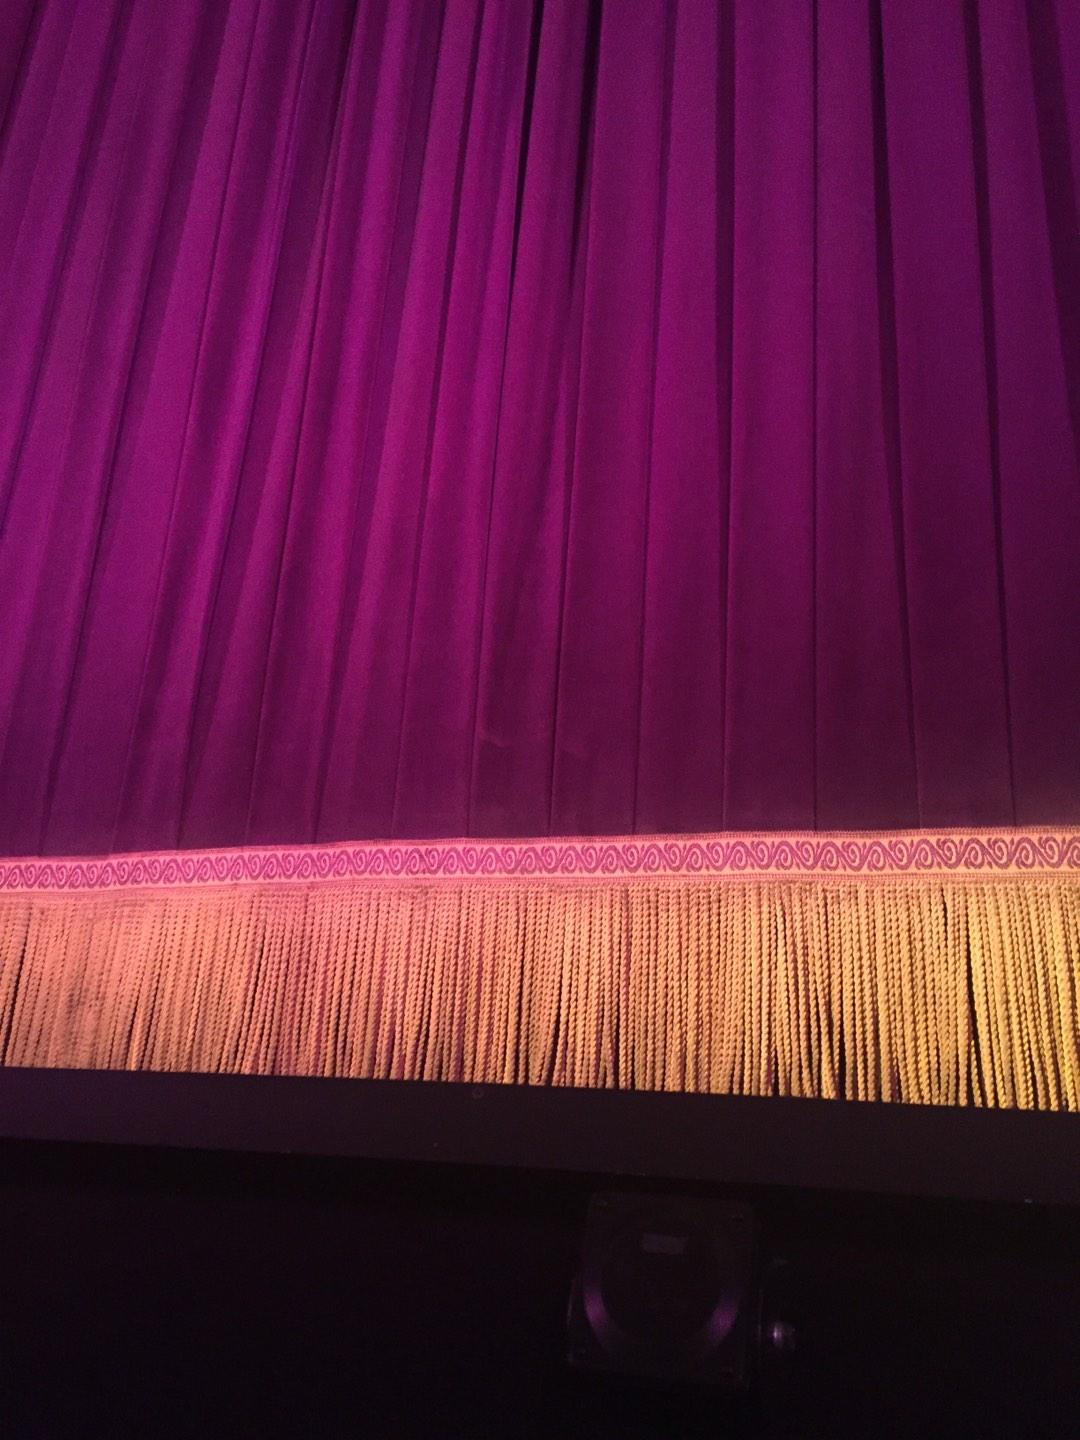 Lyceum Theatre (Broadway) Section Orchestra C Row AA Seat 103